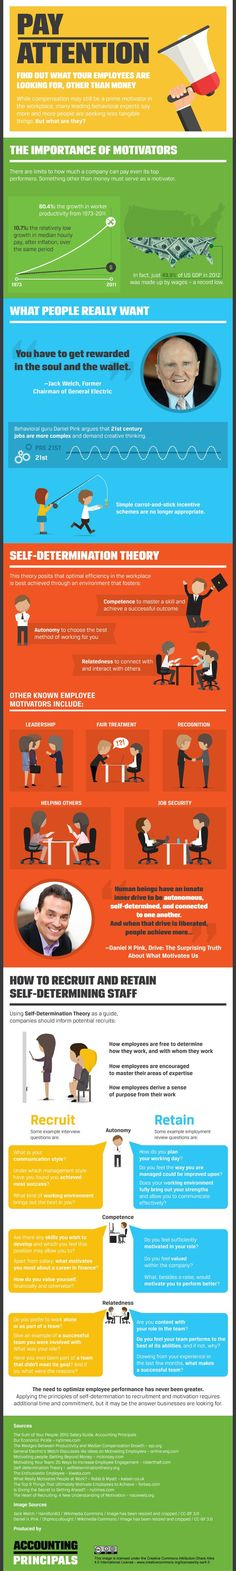 Infographic: What Your Employees are Looking for Other Than Money?